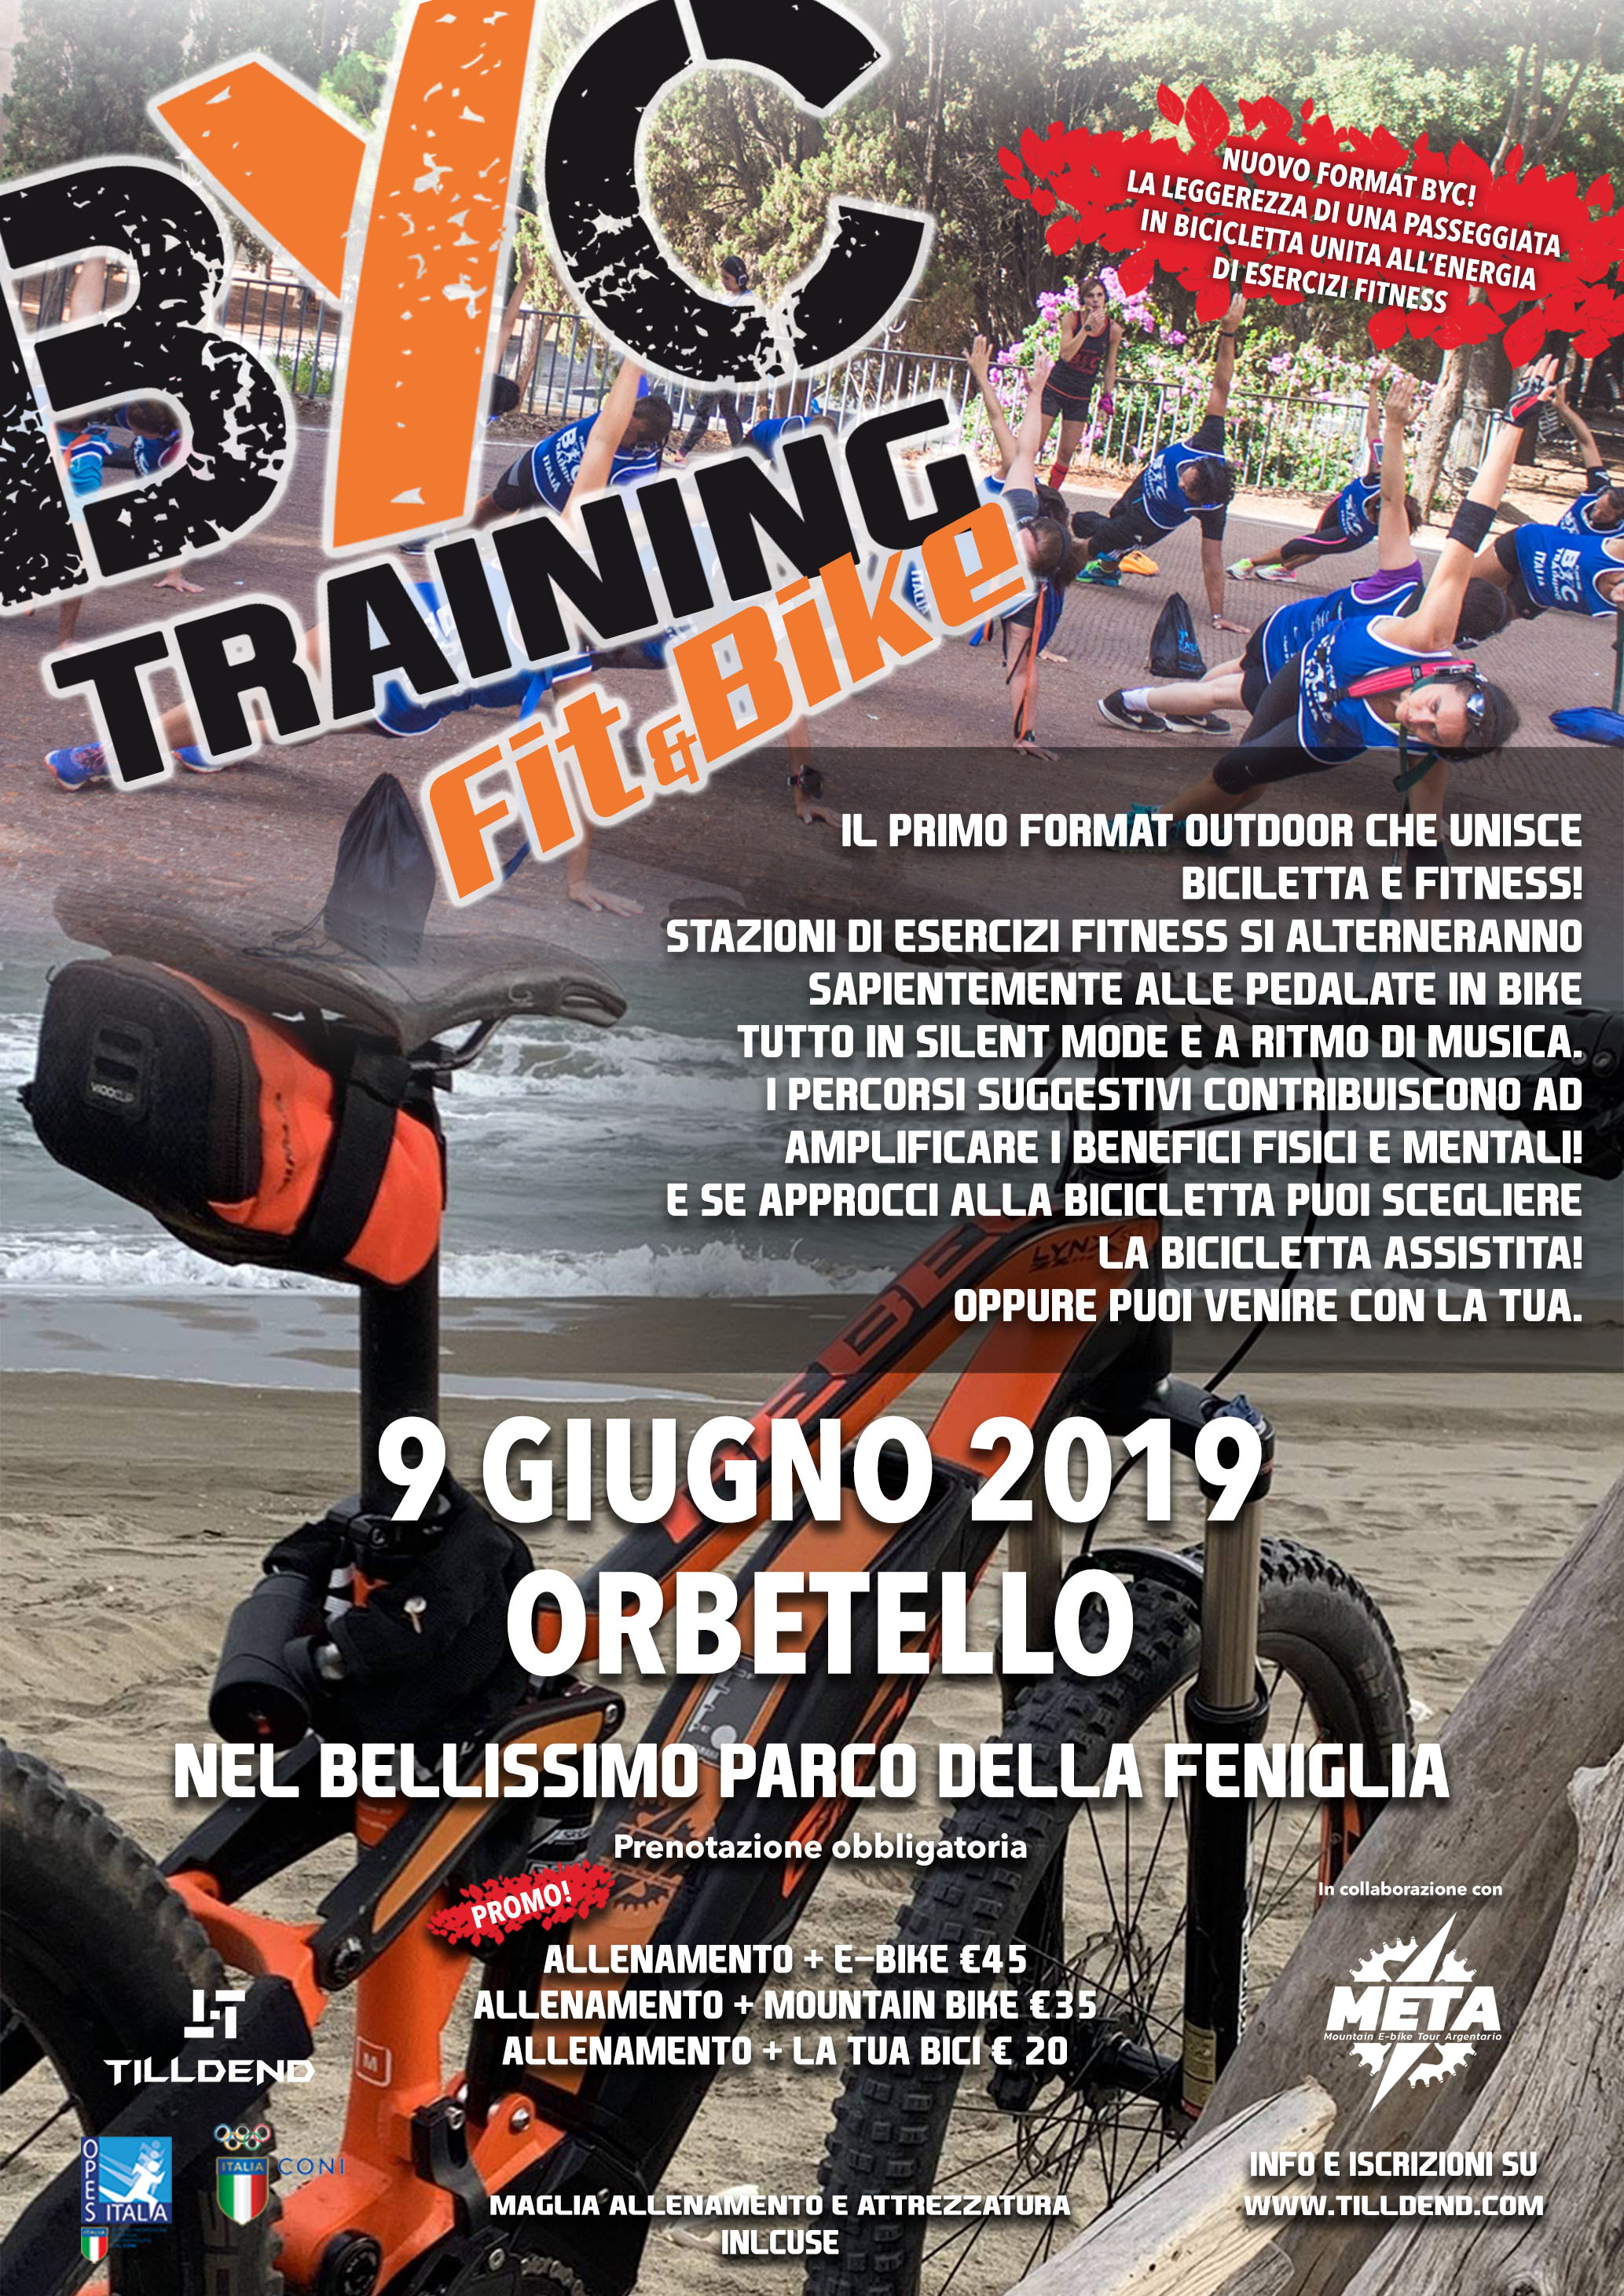 BYC Training FIT and BIKE Orbetello 9 giugno